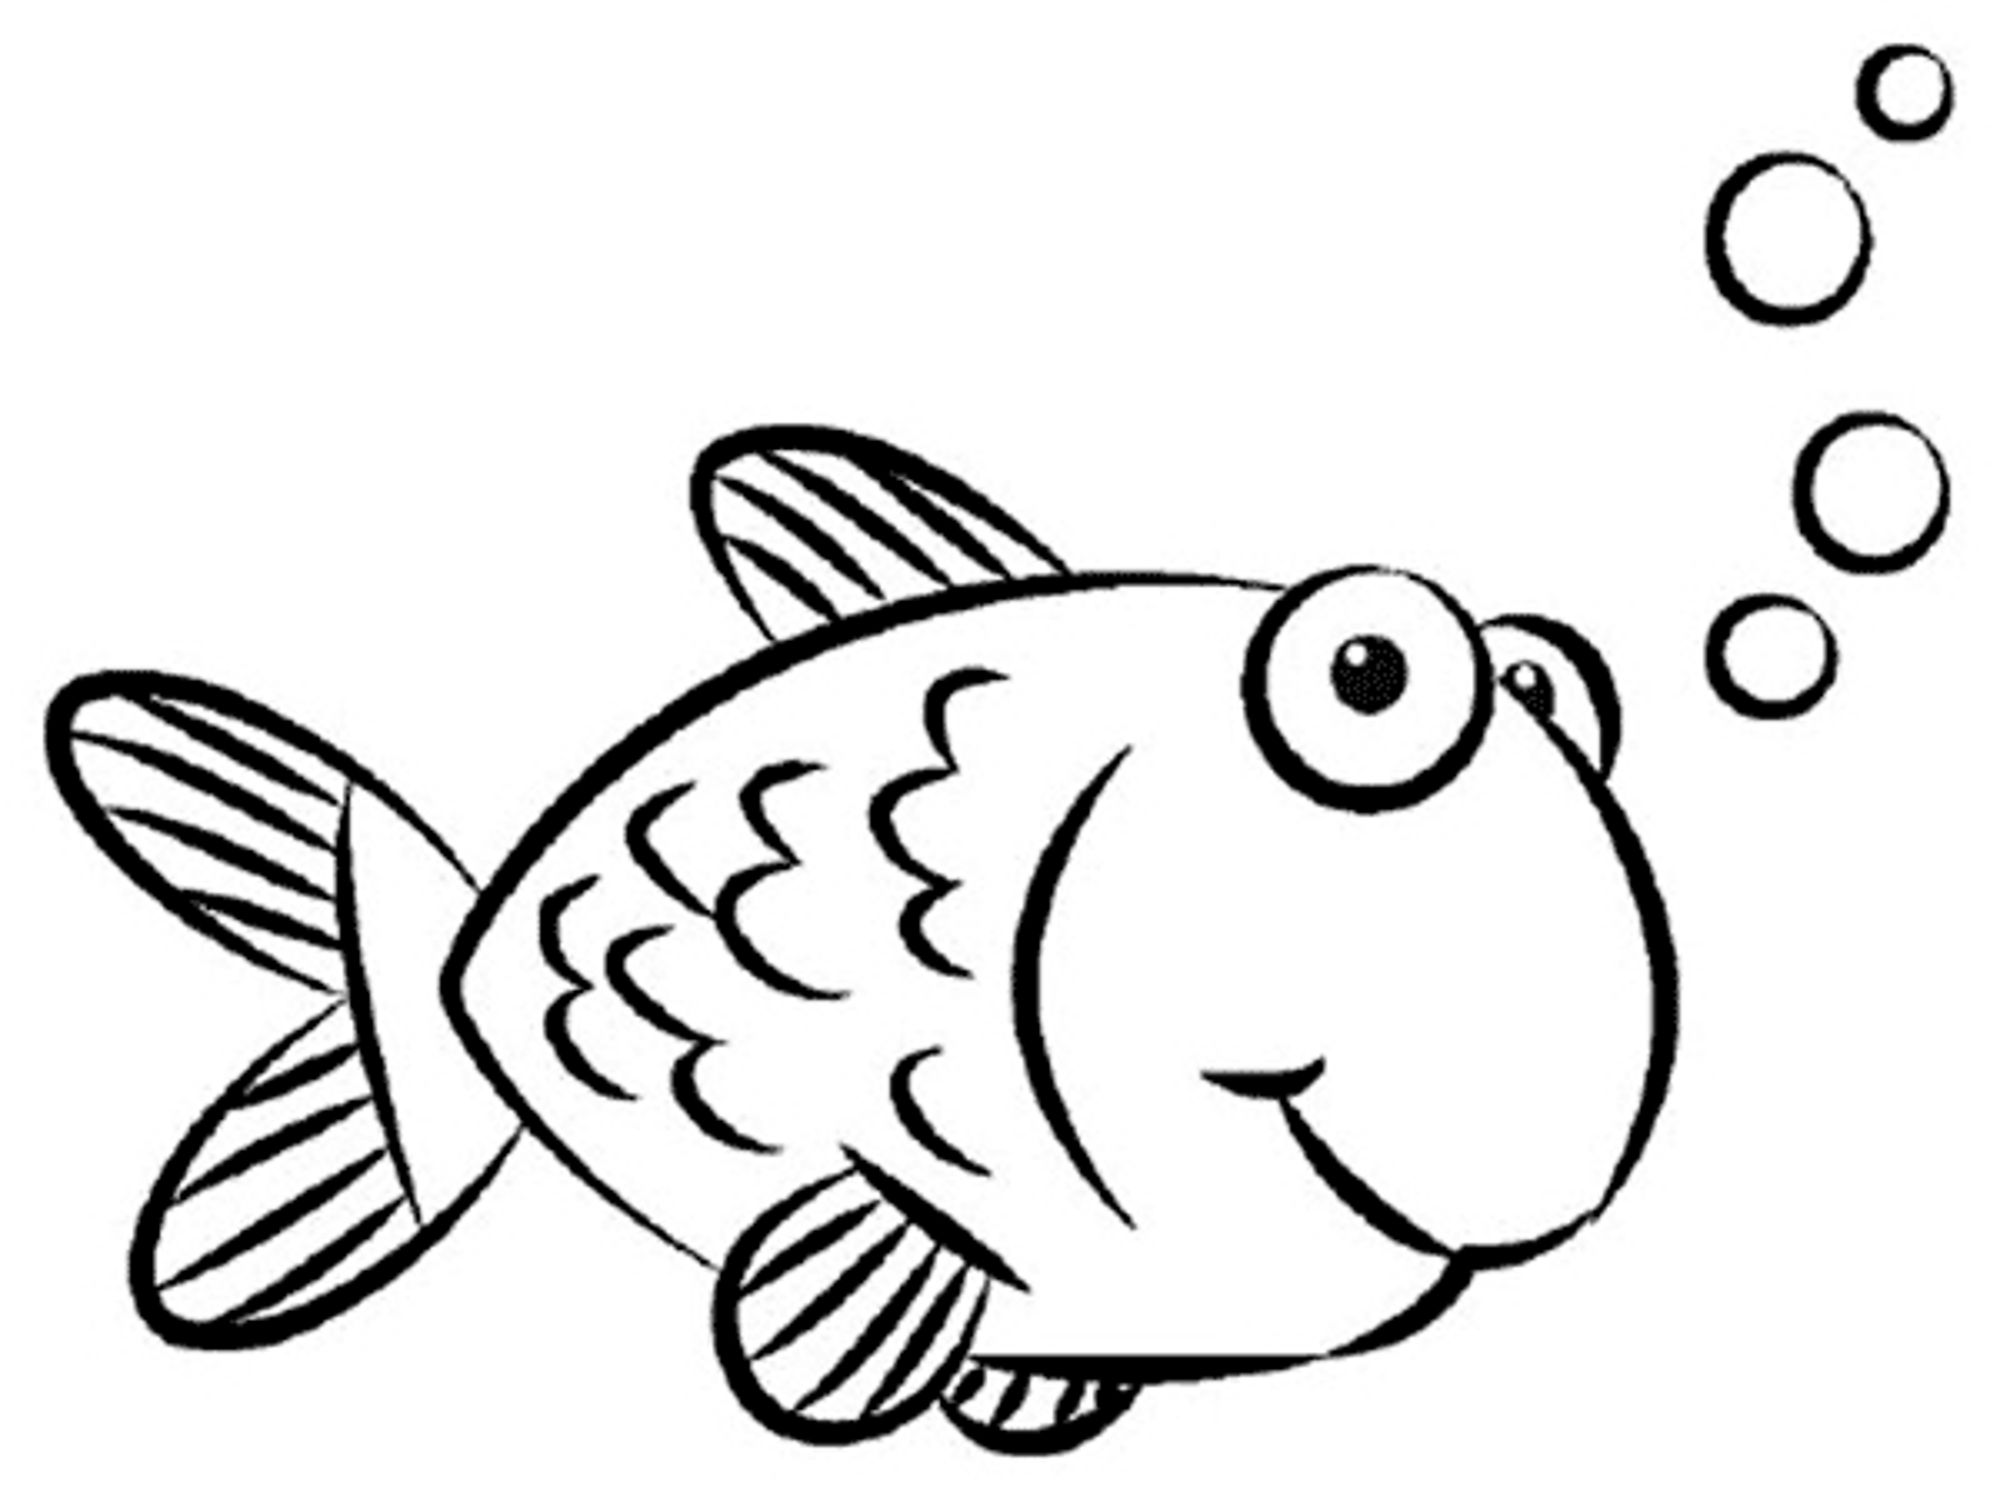 shop related products - Printable Fish Coloring Pages